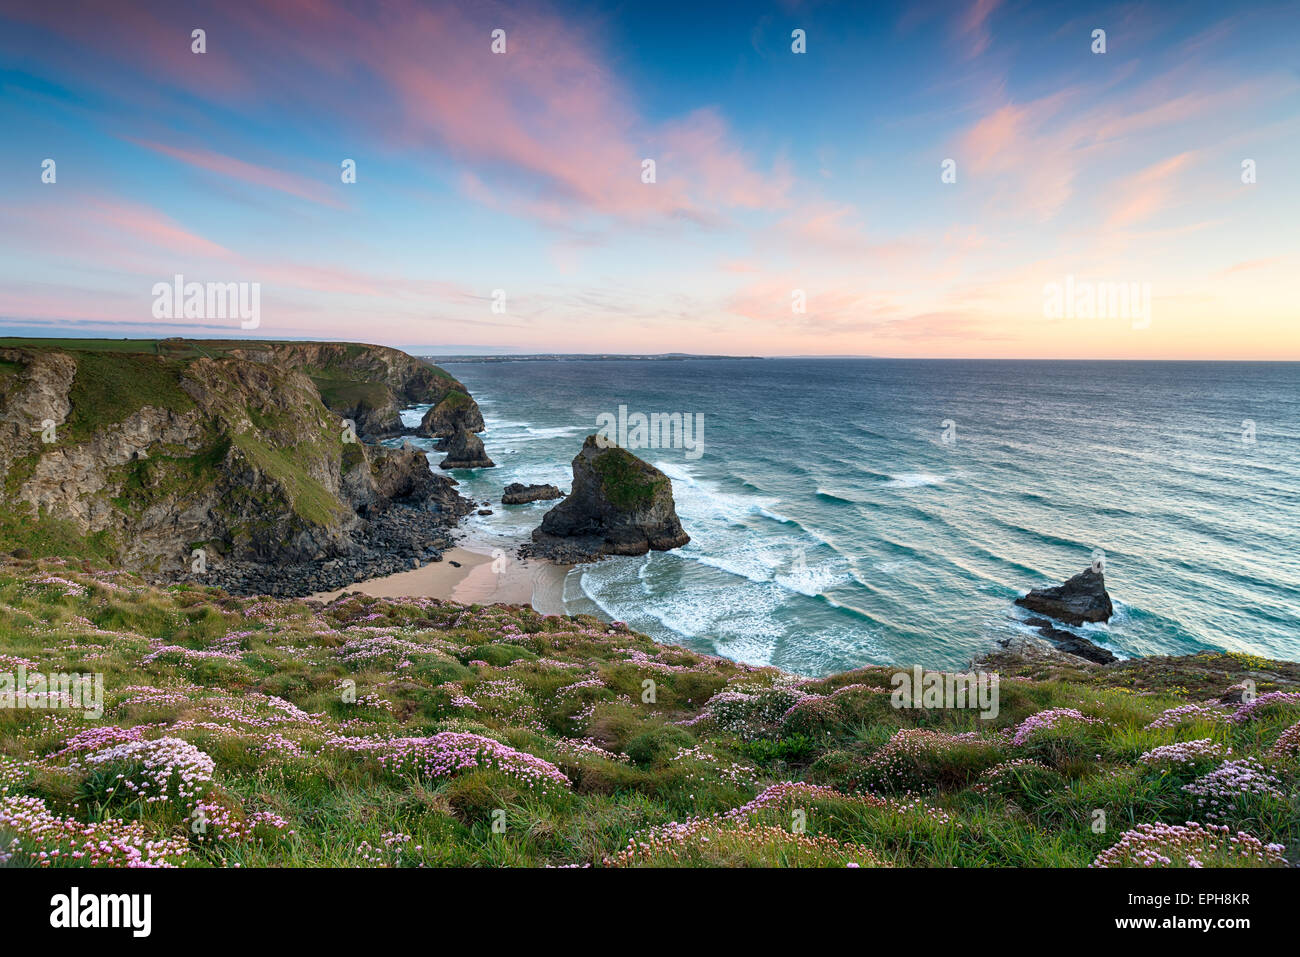 Sunset over clumps of flowering Sea Thrift growing on cliffs above Bedruthan Steps - Stock Image